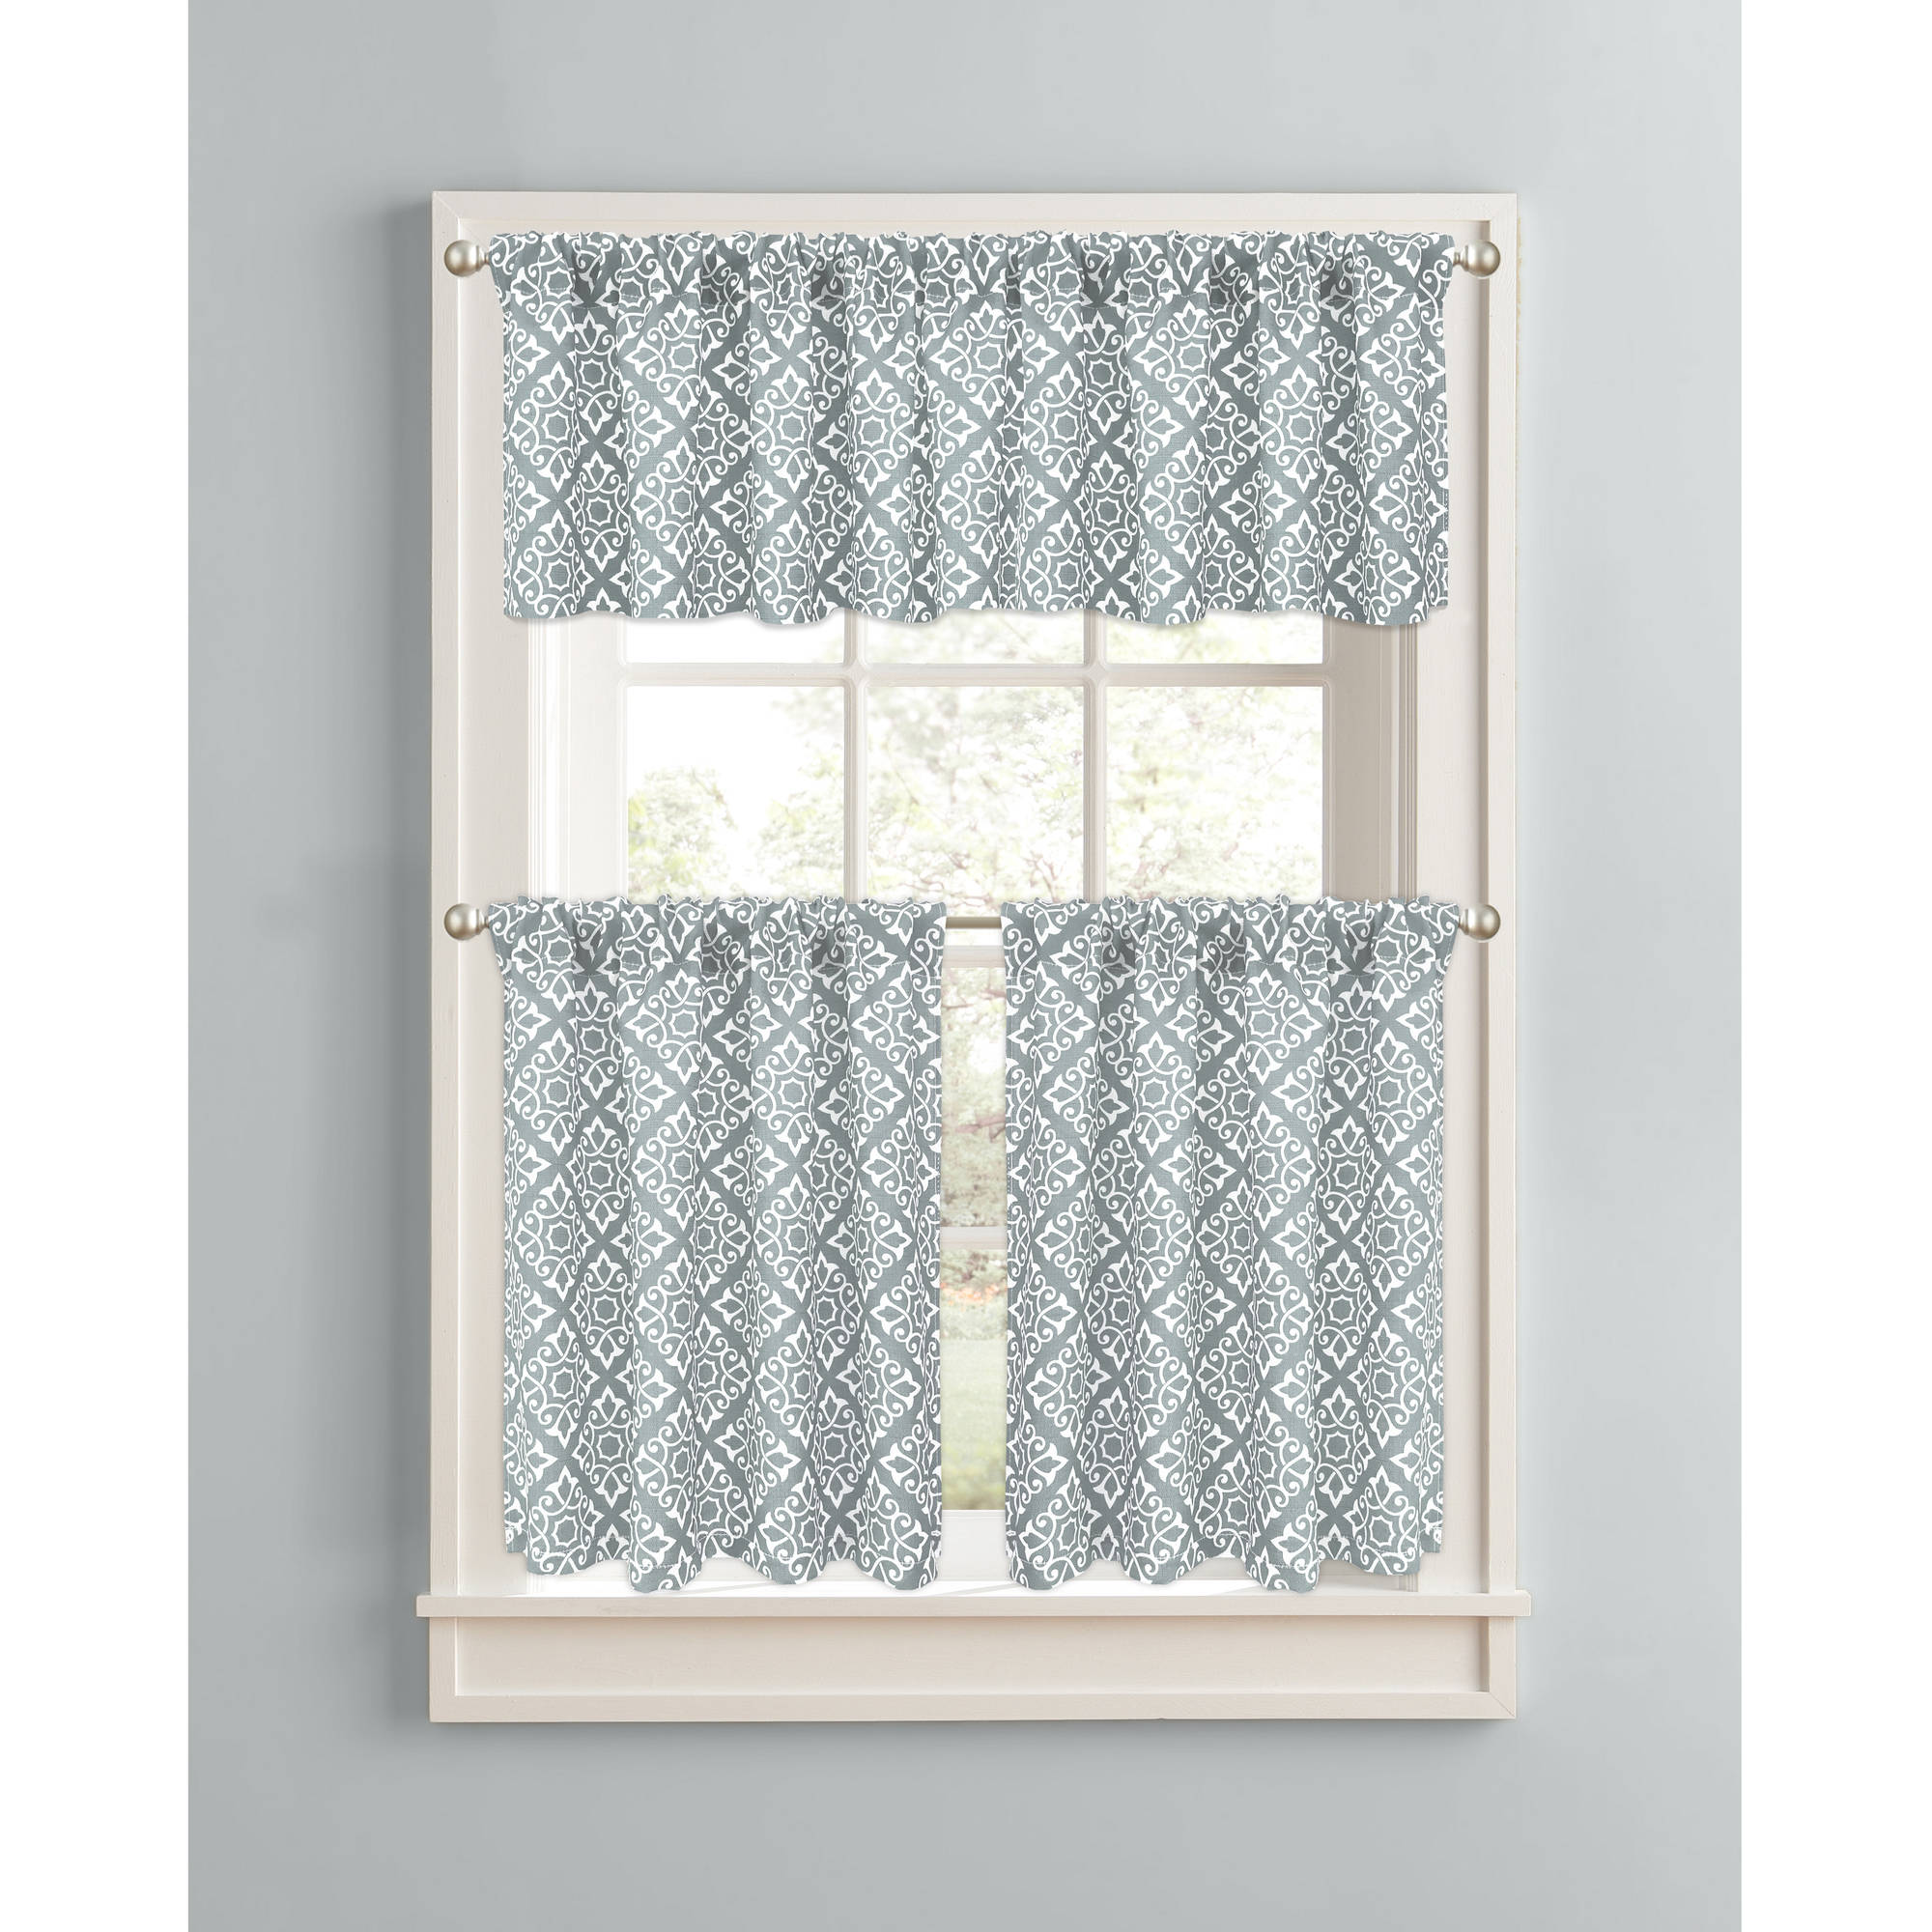 Duck Egg Blue Bedroom Curtains Kitchen Curtains and Valances